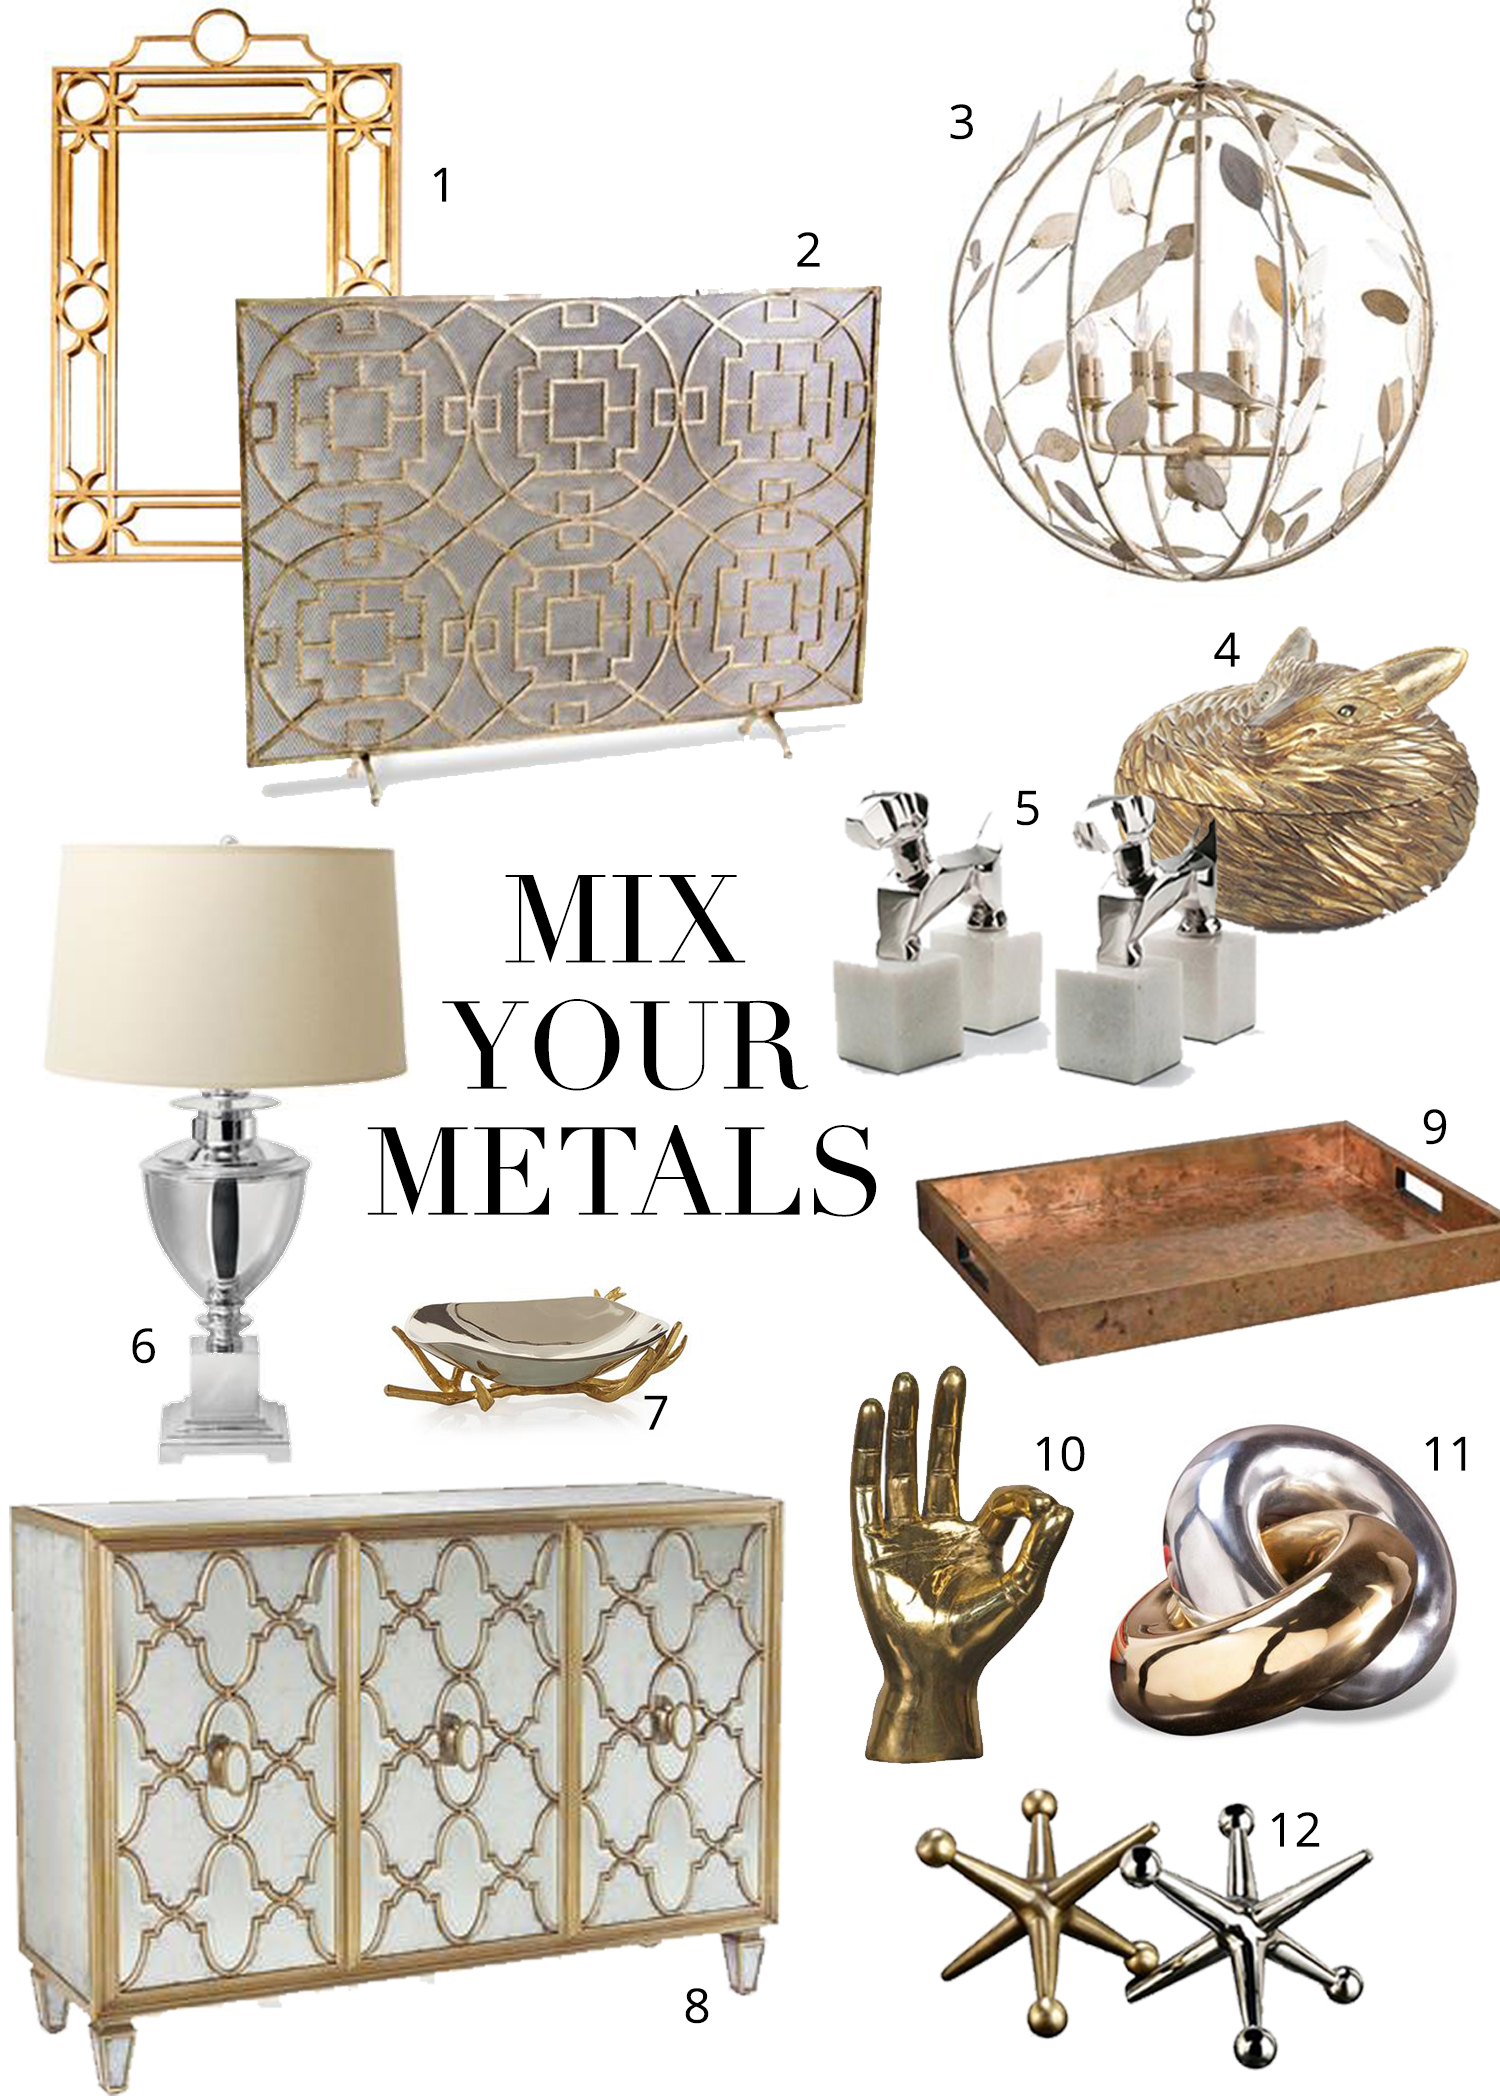 Mixing metals the do 39 s and don 39 ts kathy kuo blog for Gold home decorations